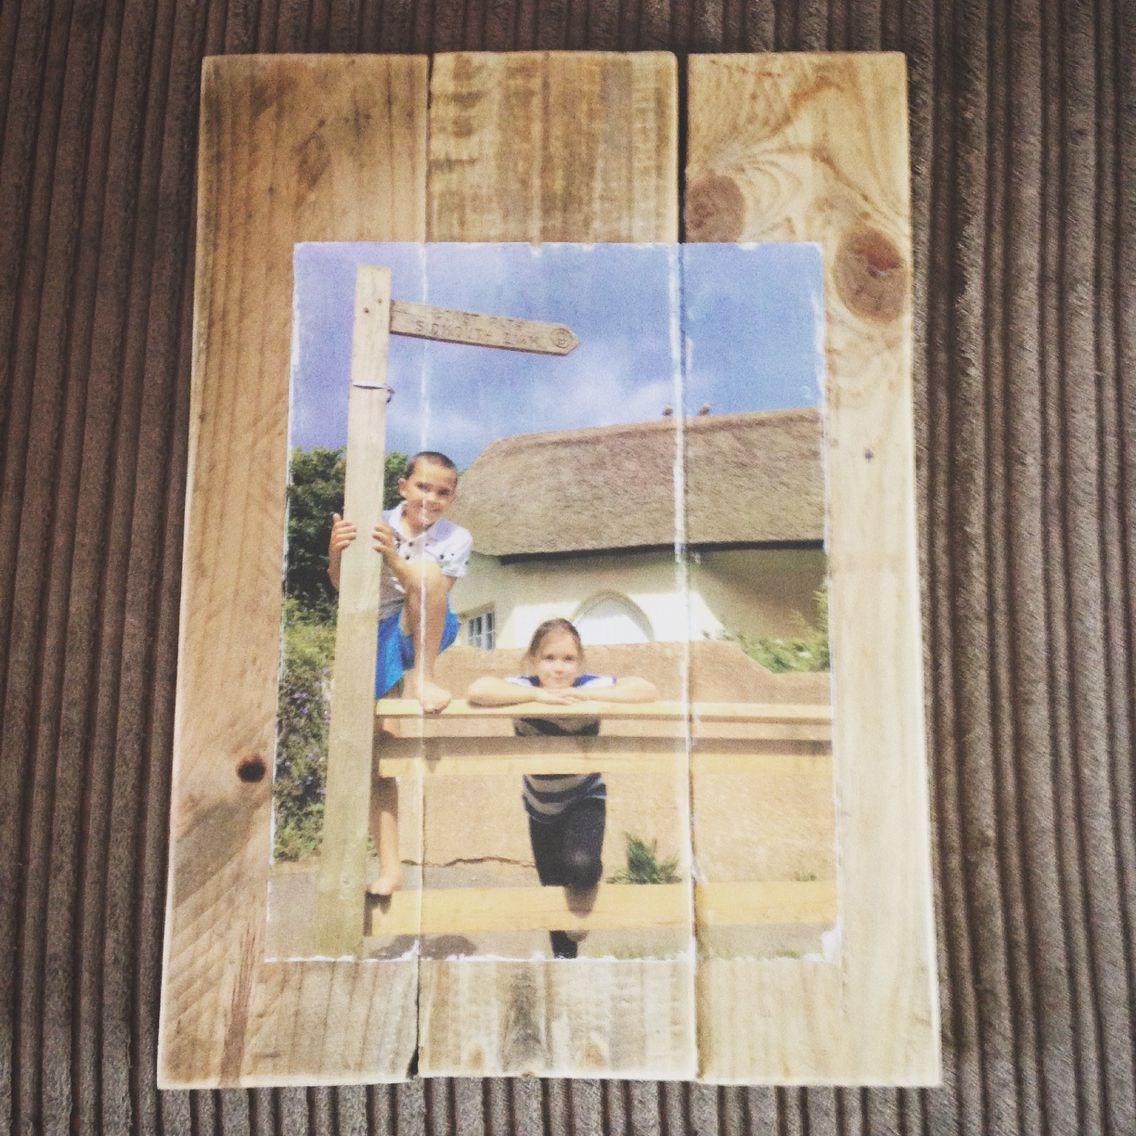 Photo on pallet wood